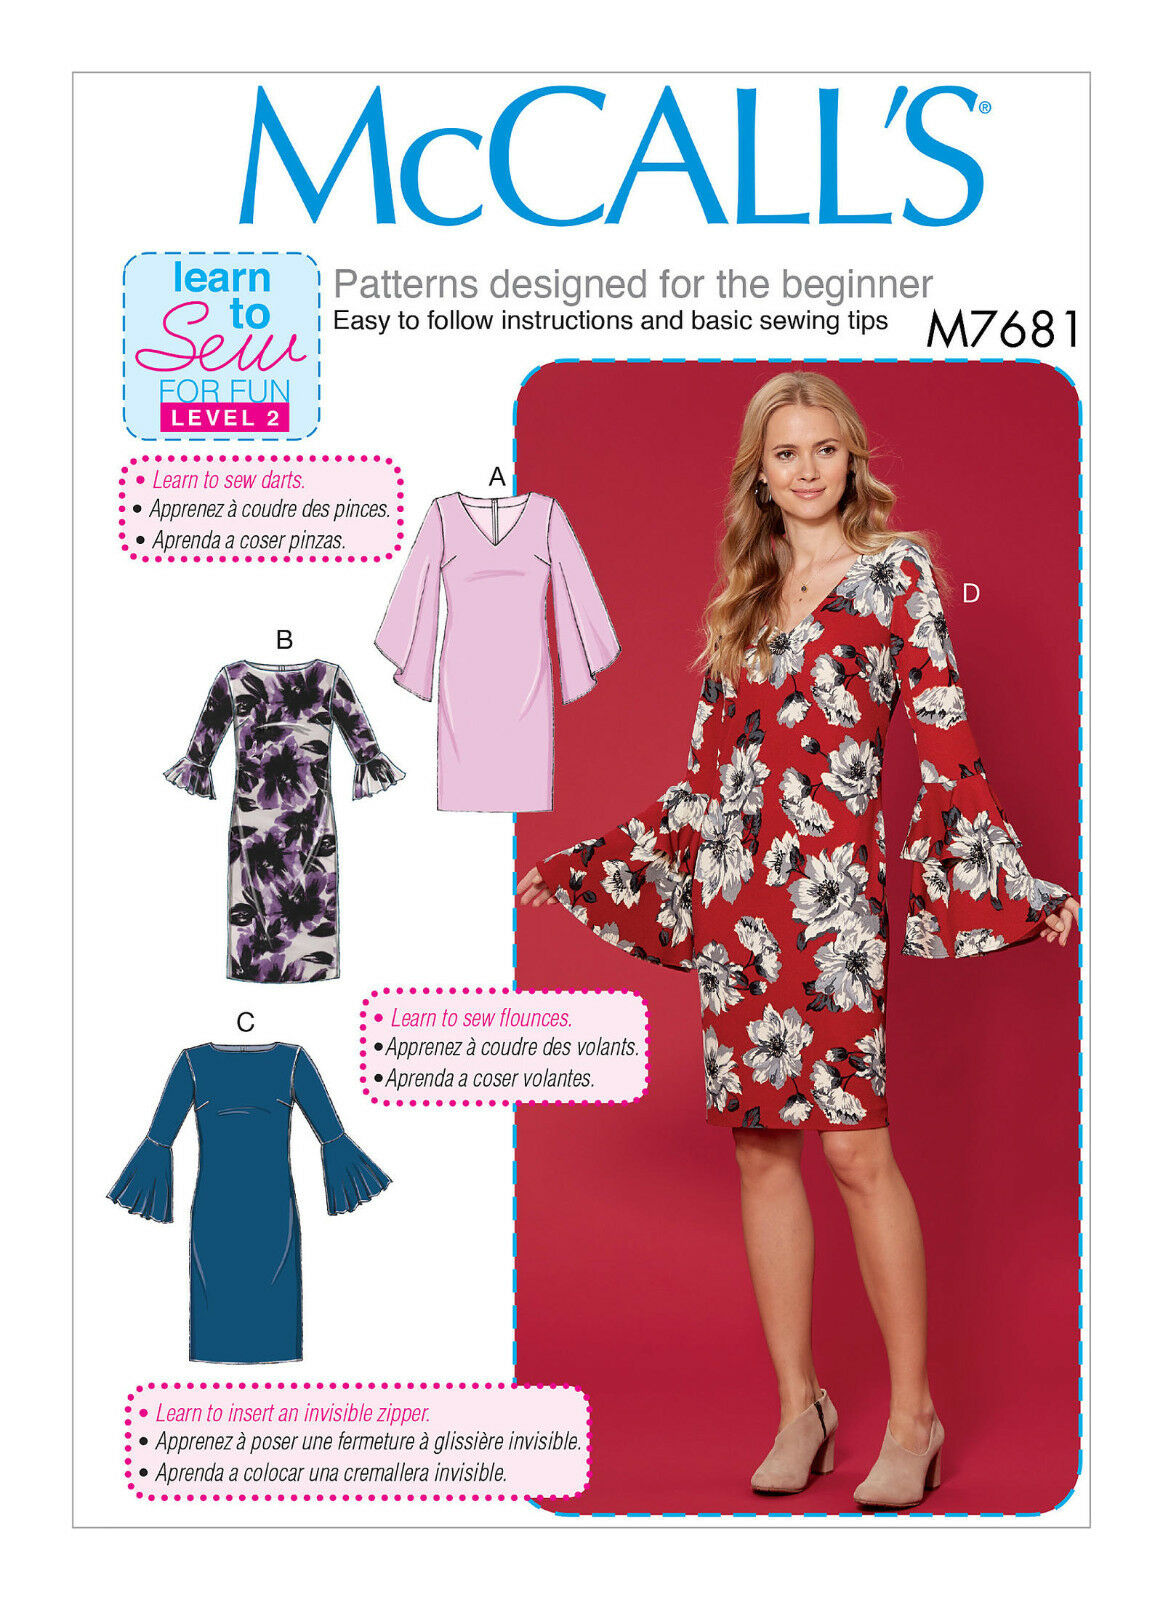 McCalls M7531 Learn to Sew for Fun PATTERN Misses Dresses Sizes XSM-XXL